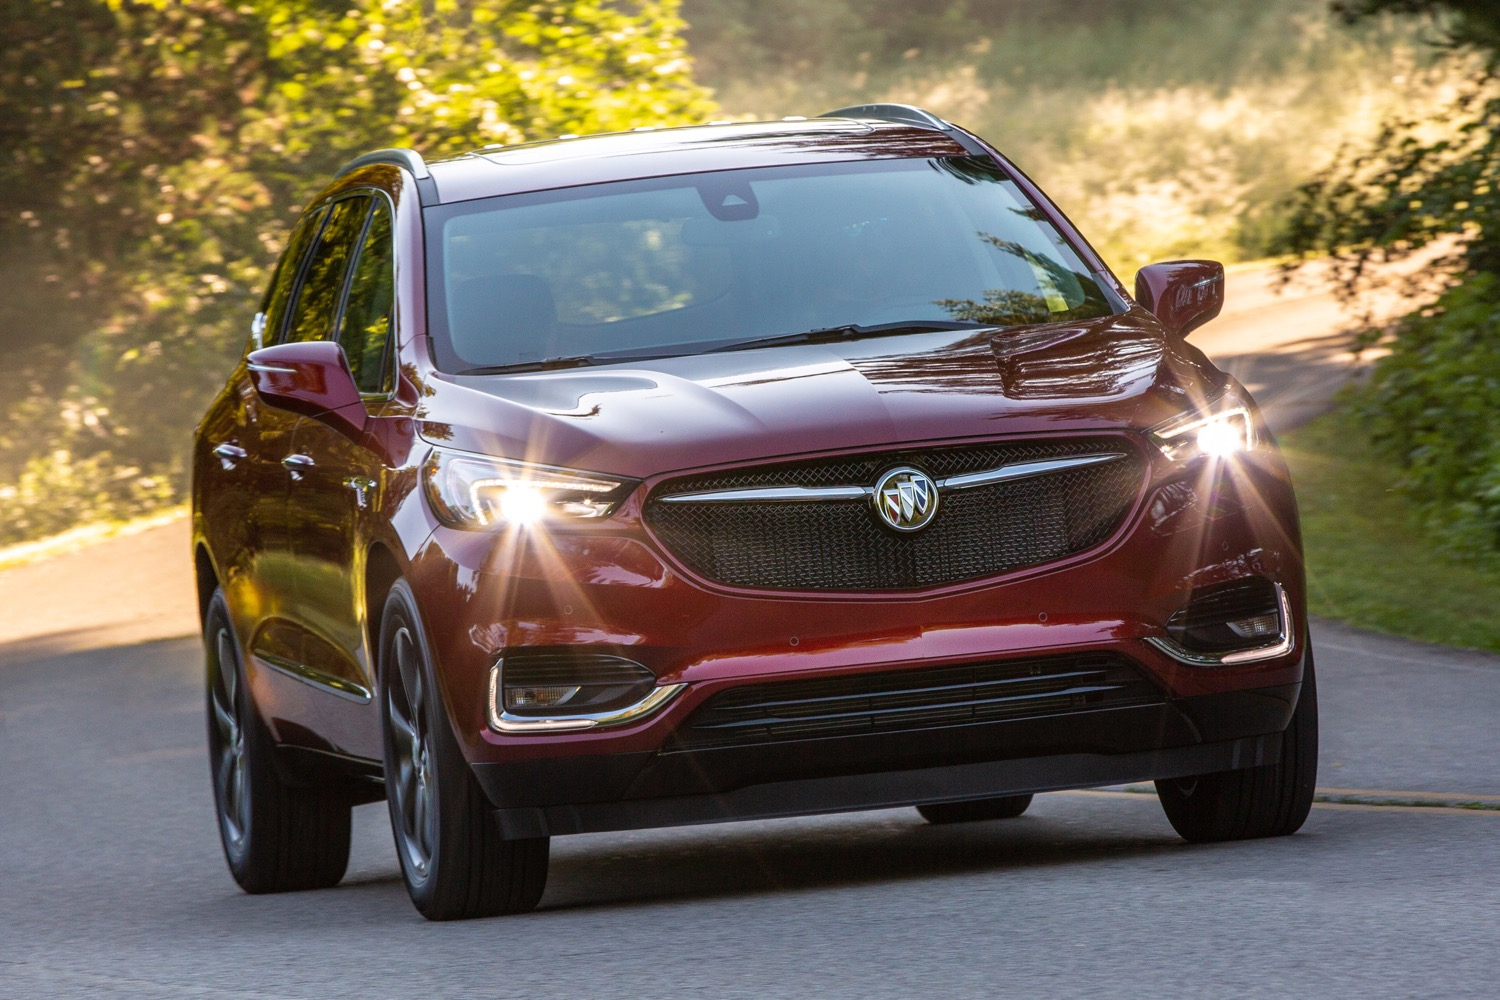 2020 Buick Enclave Info, Specs, Wiki | Gm Authority 2022 Buick Enclave Ground Clearance, Gas Type, Horsepower